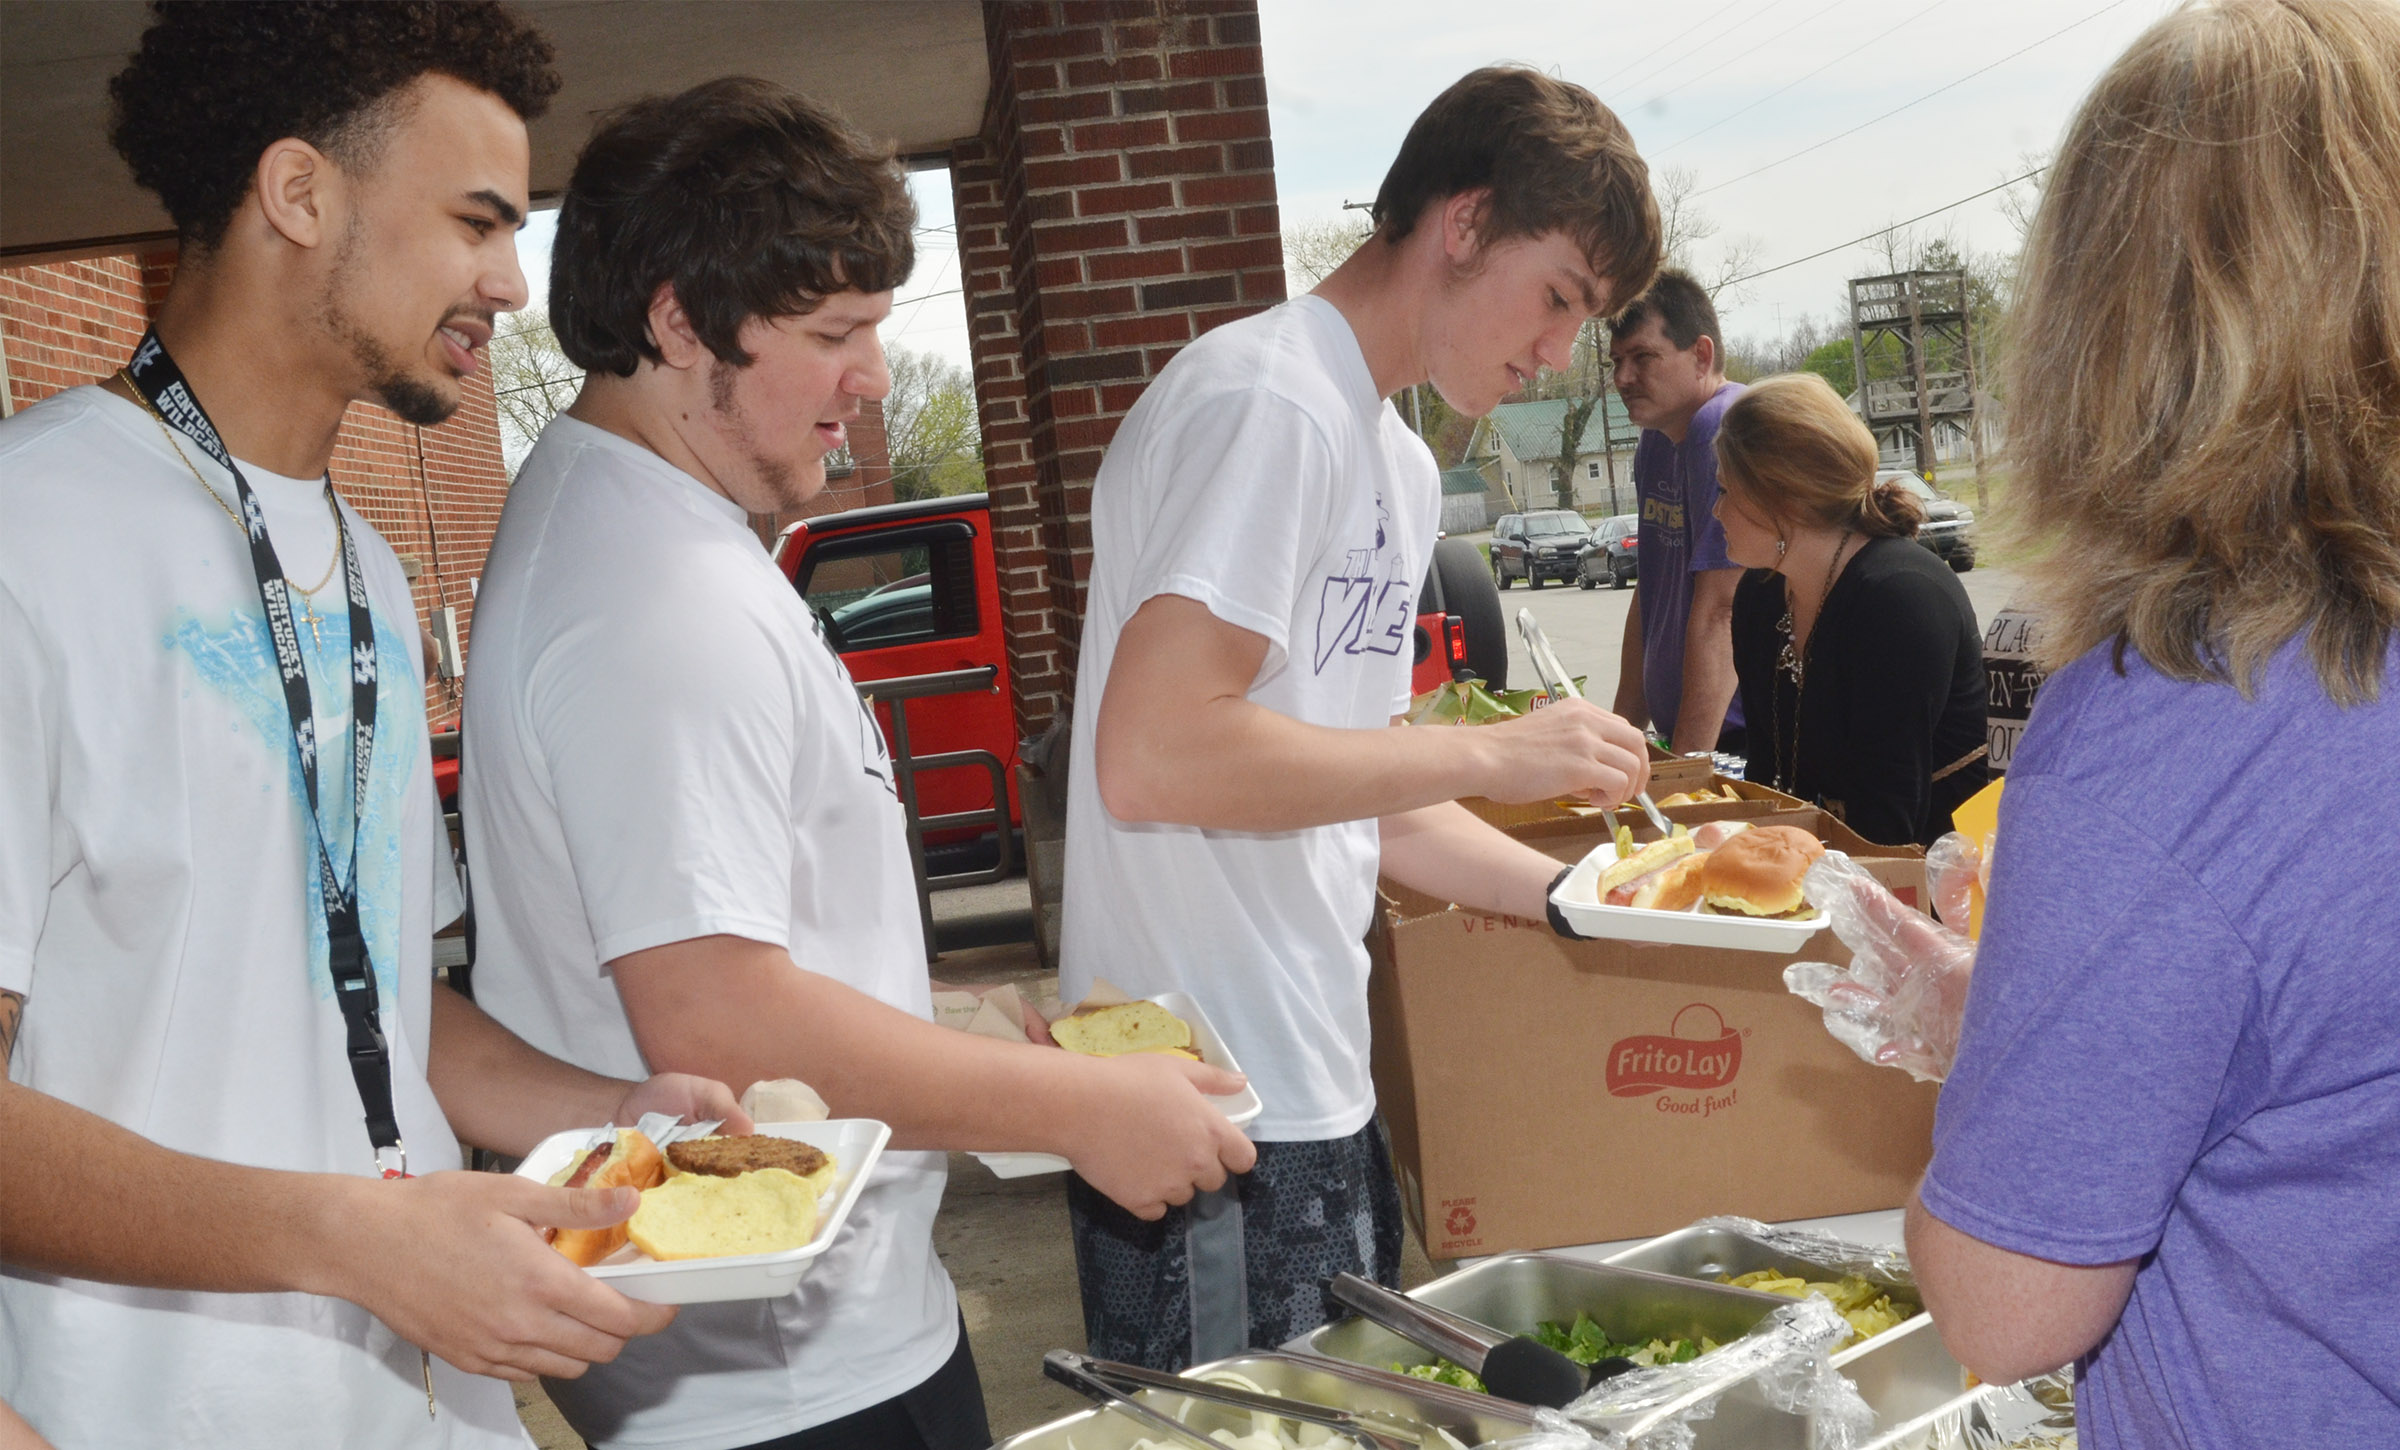 CHS seniors, from left, Arick Groves, Donnie Osinger and Zack Bottoms eat lunch.